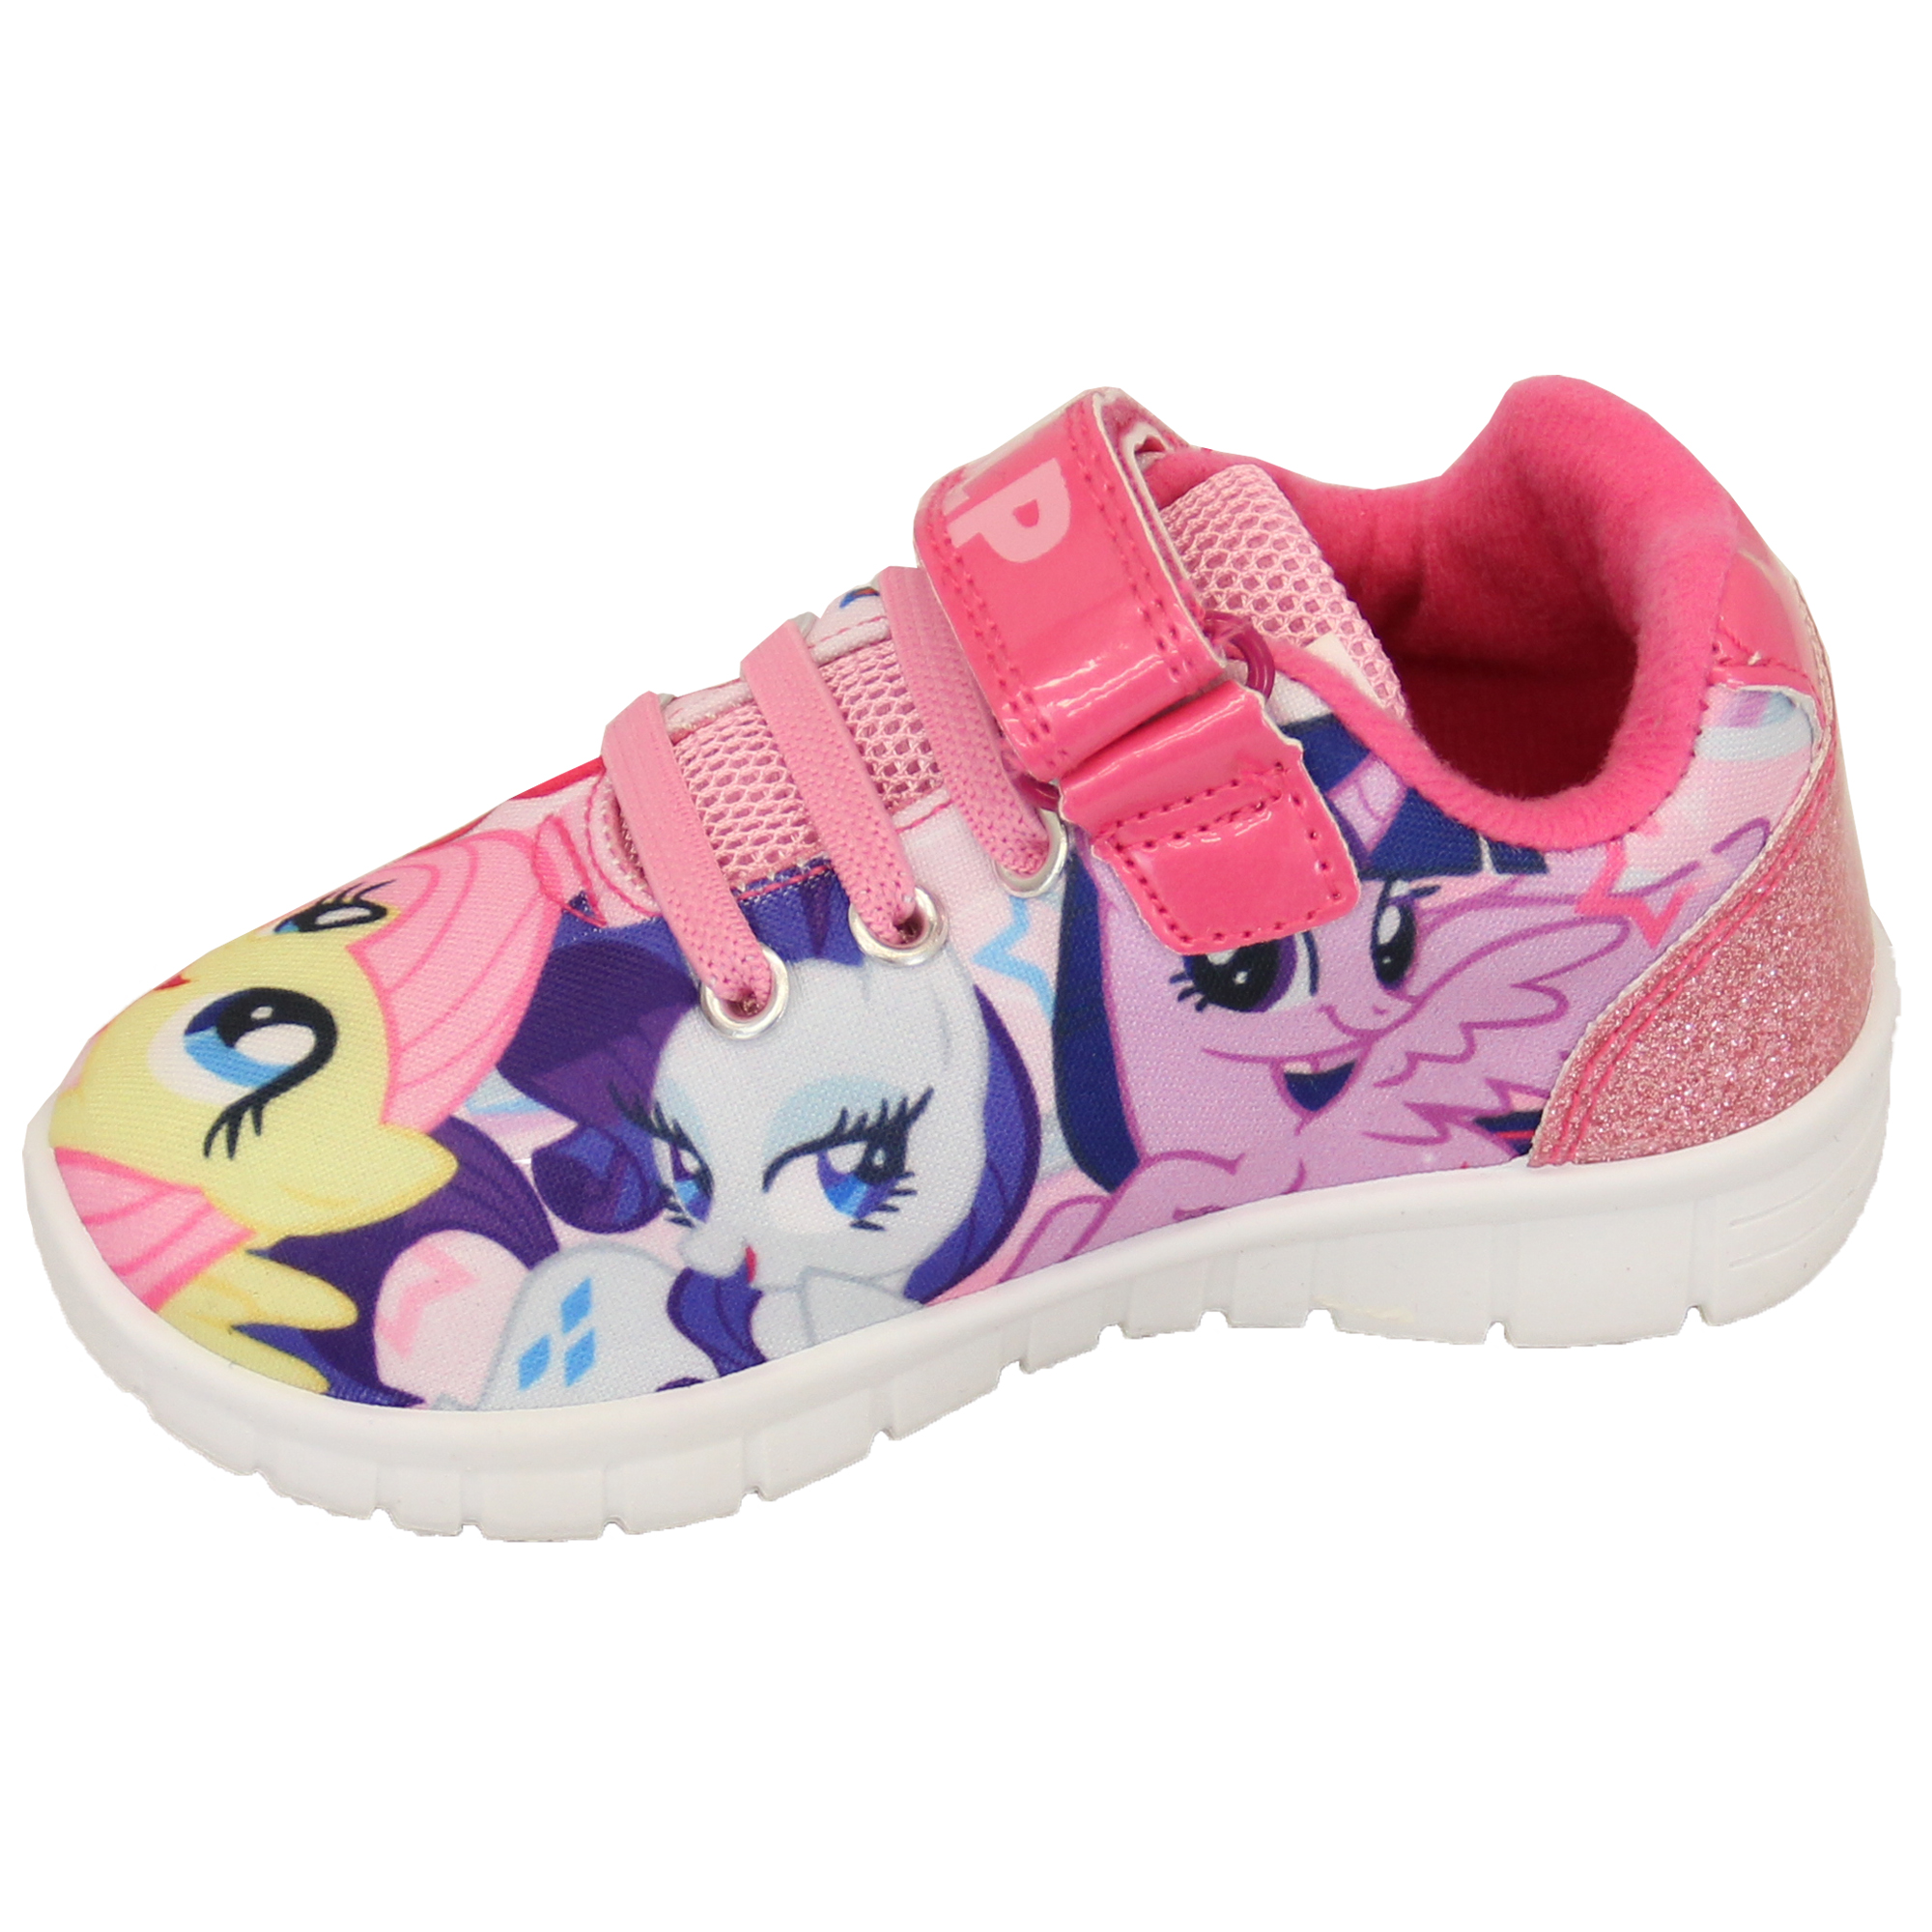 Women's White My Little Pony Leather Sneakers $ $ From Farfetch Price last checked 15 minutes ago. Product prices and availability are accurate as of the date/time indicated and are subject to change. Any price and availability information displayed on partners' sites at the time of purchase will apply to the purchase of this tennesseemyblogw0.cf: $